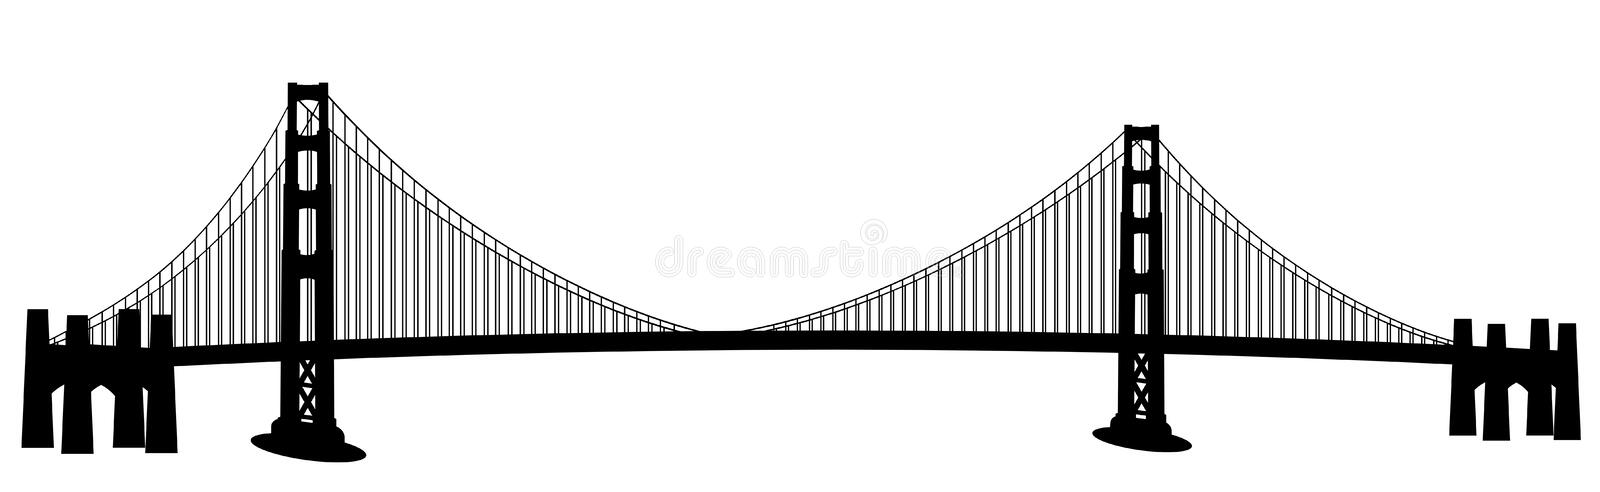 San Francisco Golden Gate Bridge Clip Art vector illustration